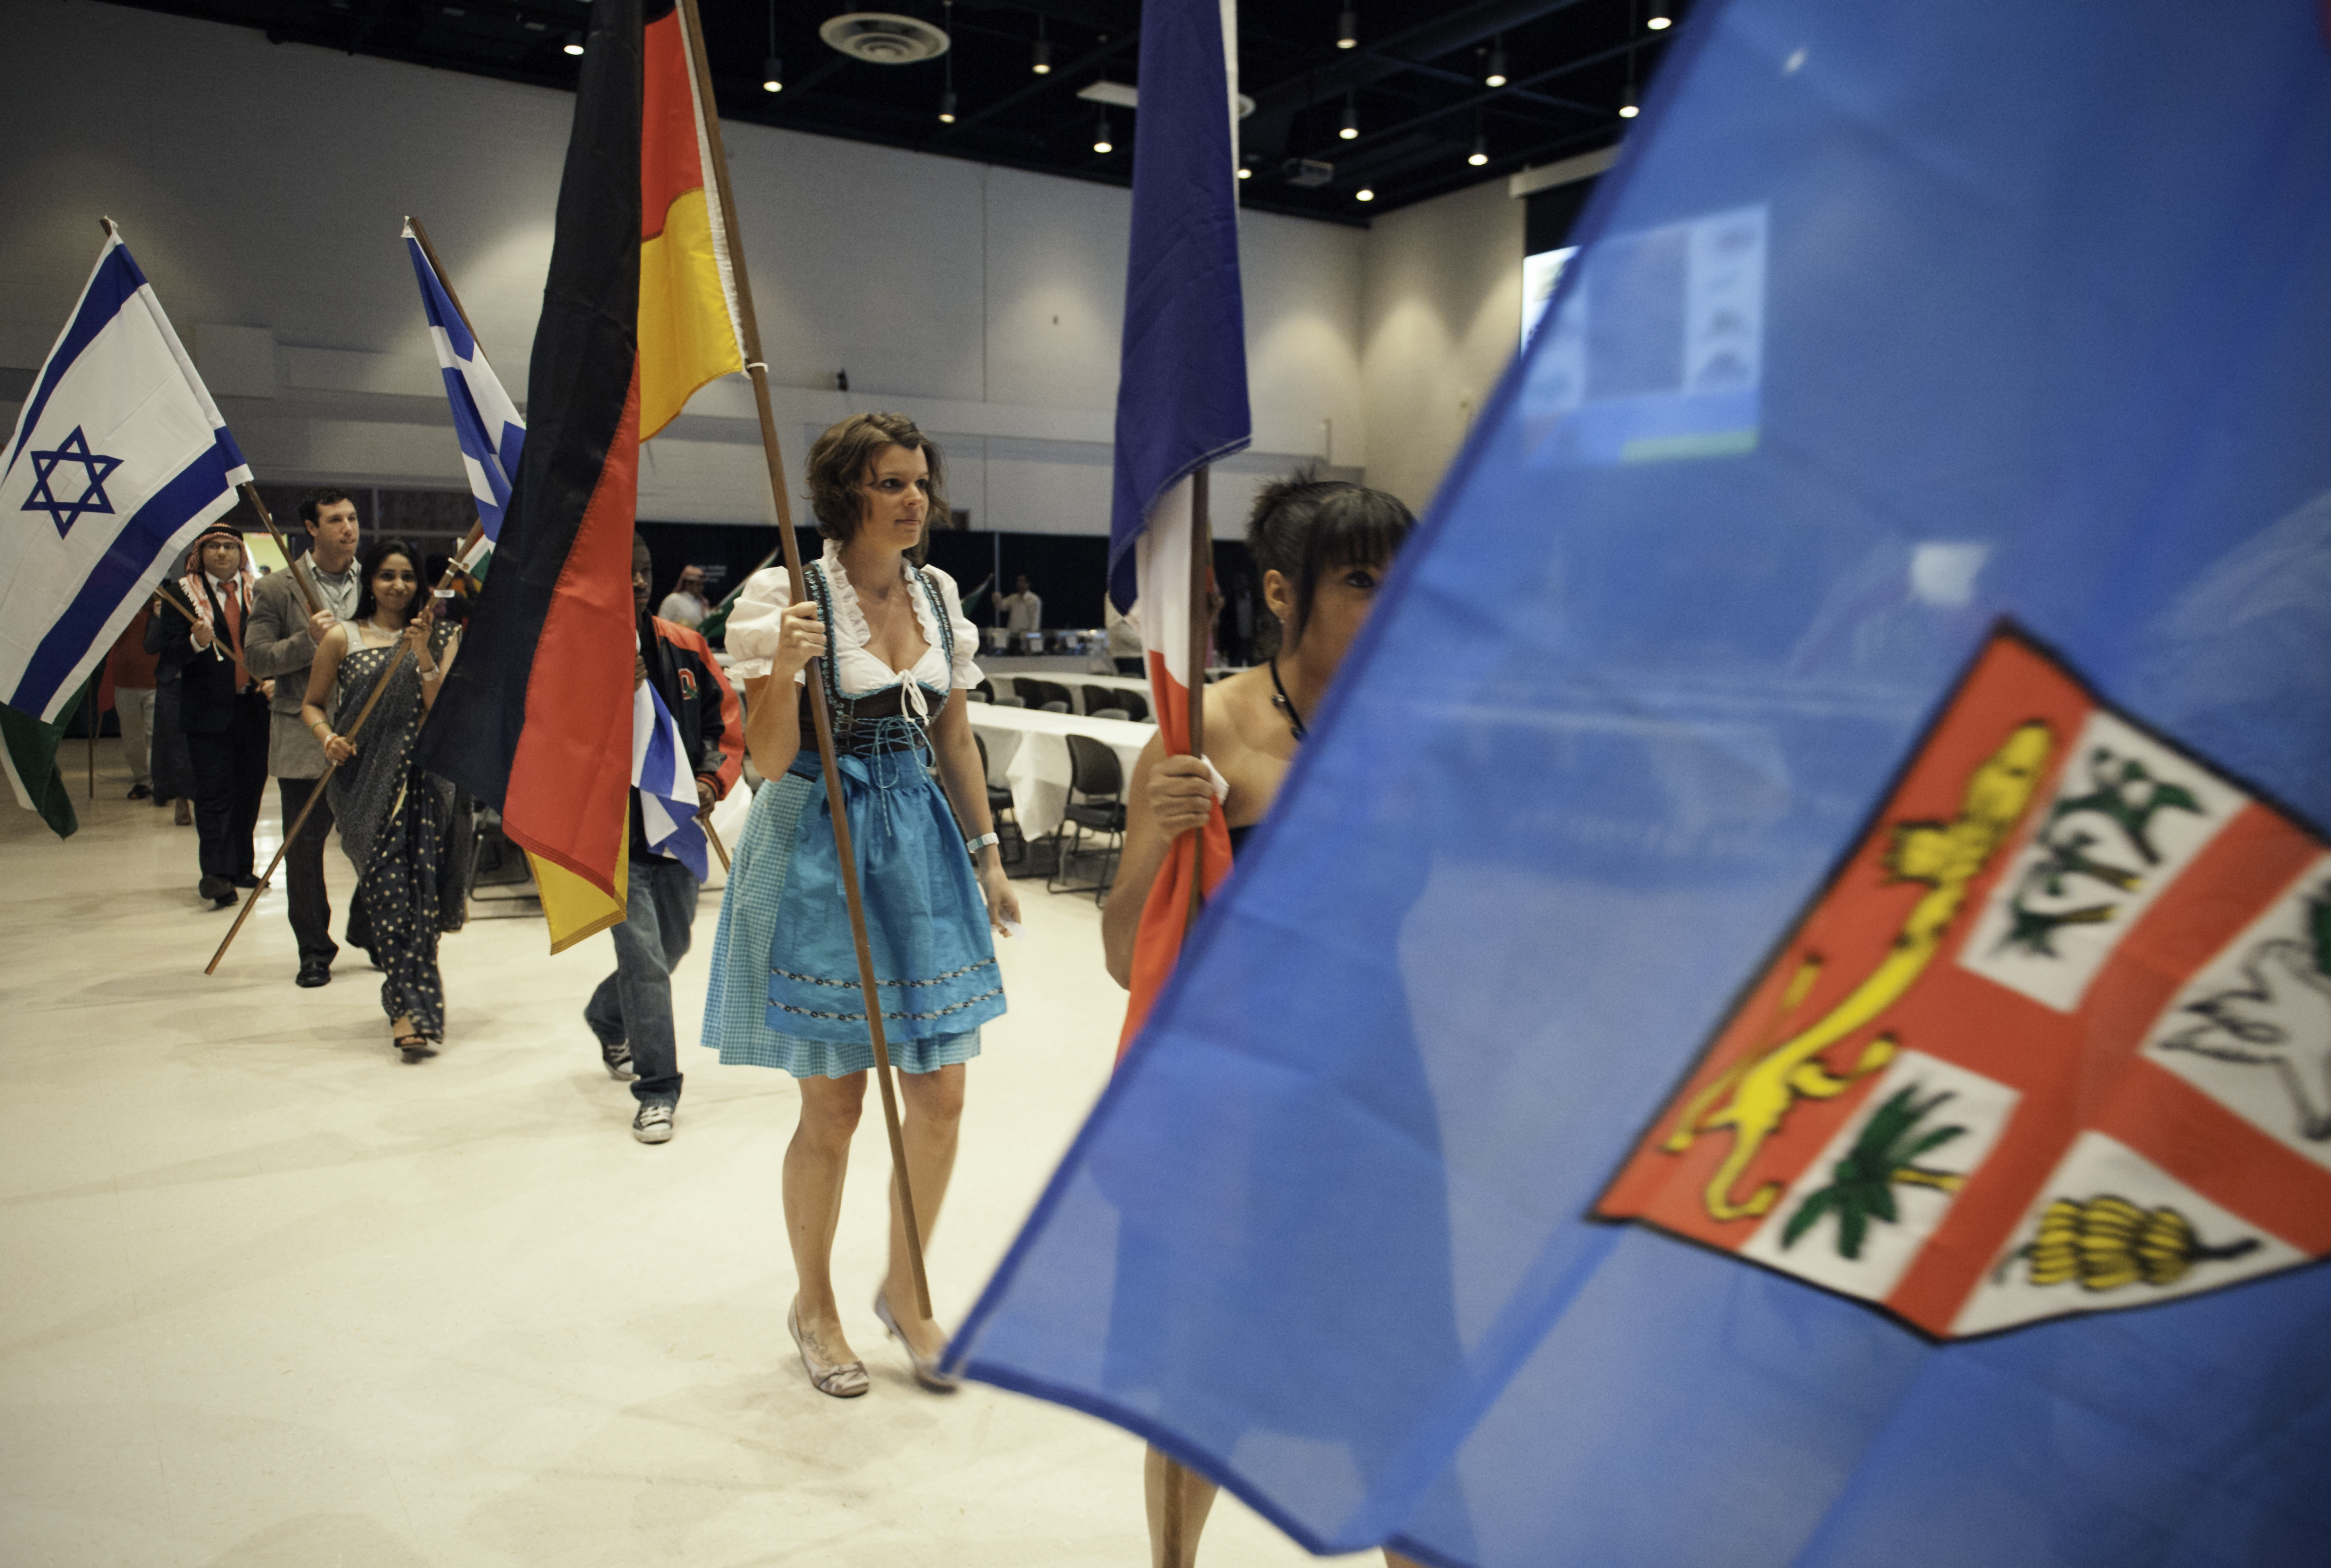 Photo of students parading through the Apoillo Room at the Srtudent Union with flags from their home country.